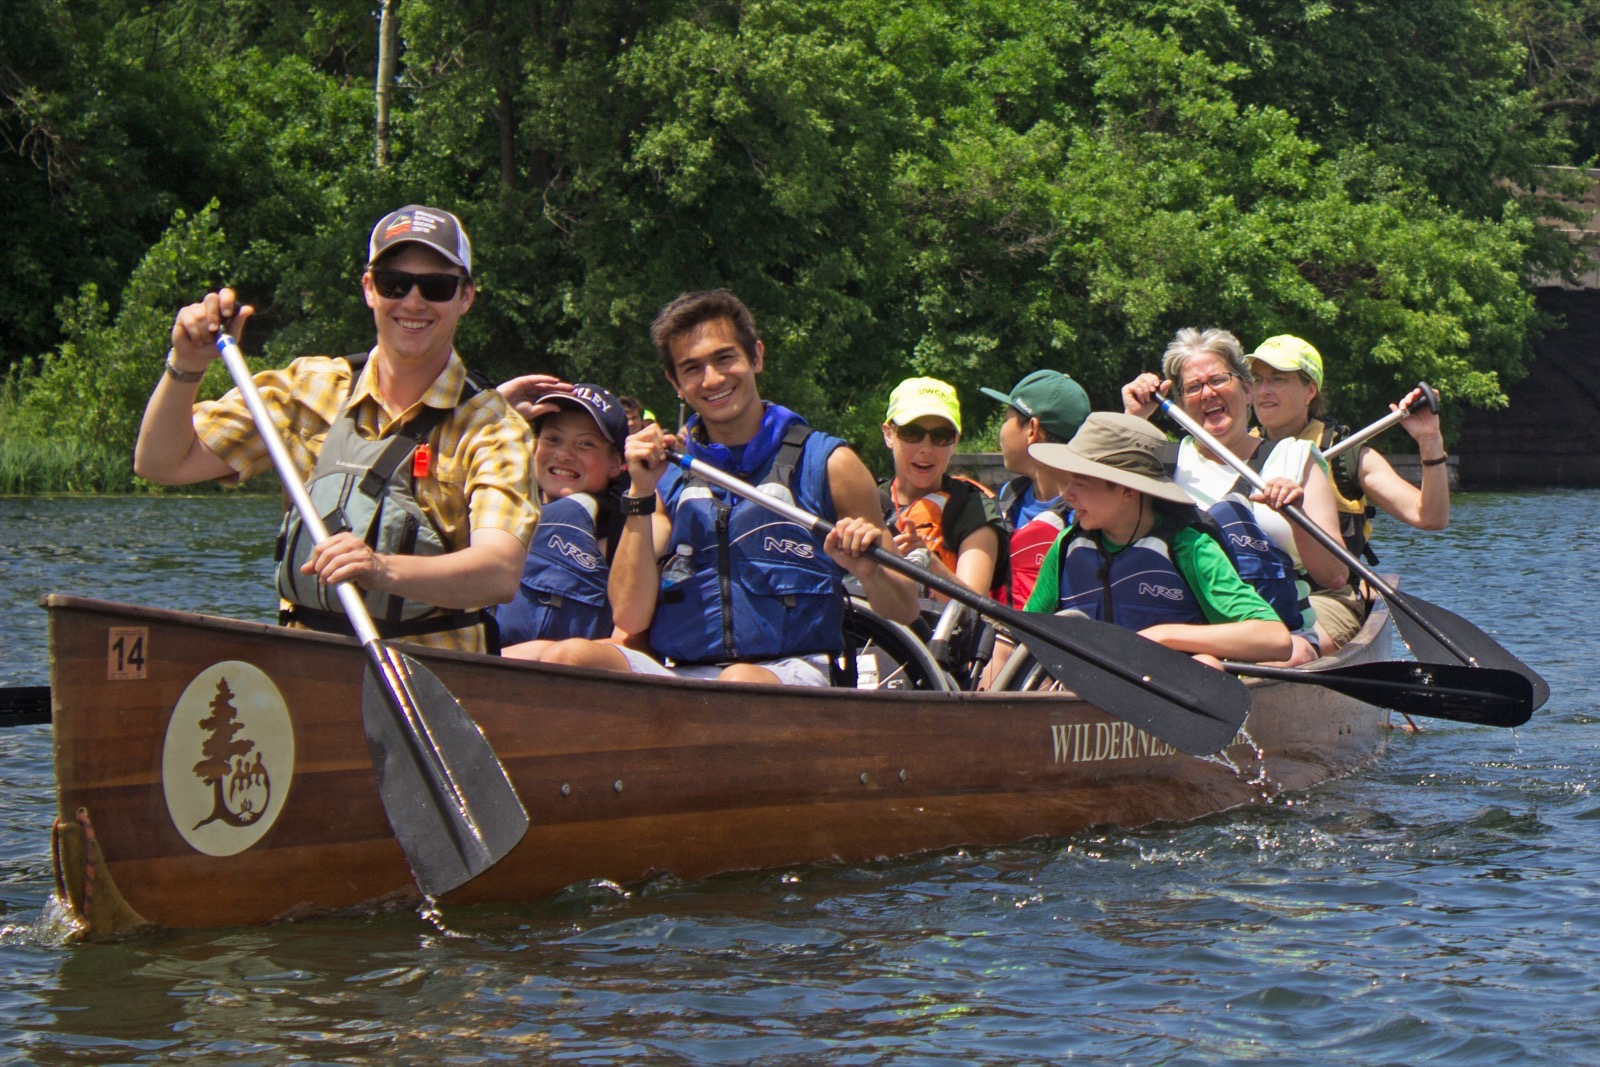 Participants smile for the camera as they canoe in a Voyageur.